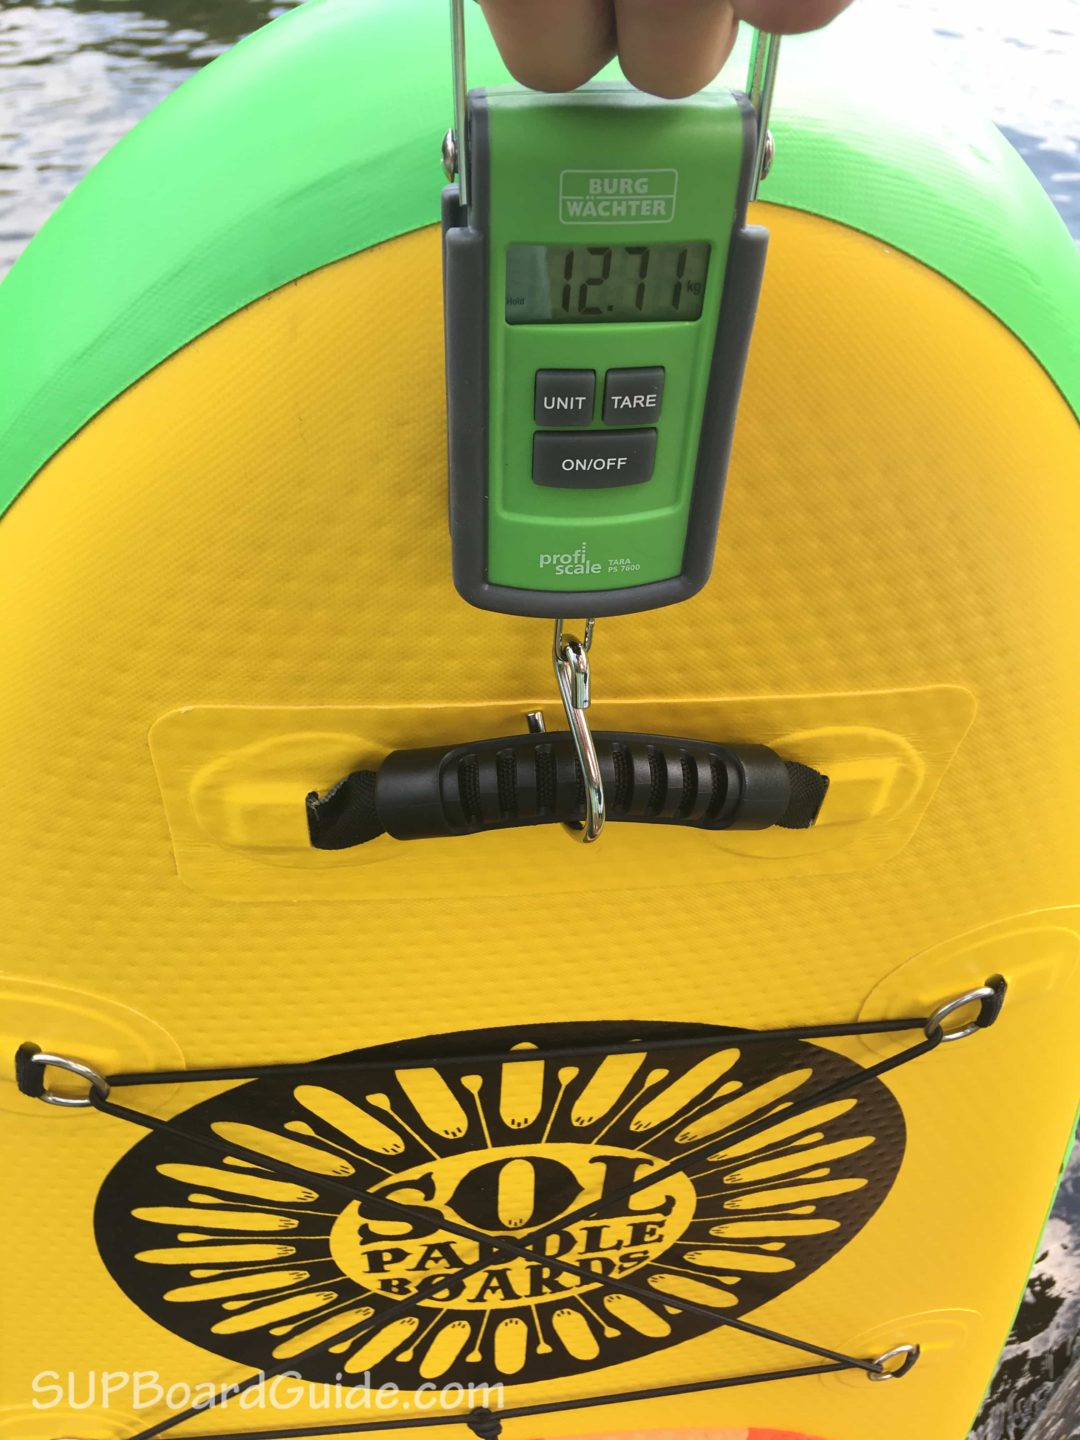 Measured paddle board weight